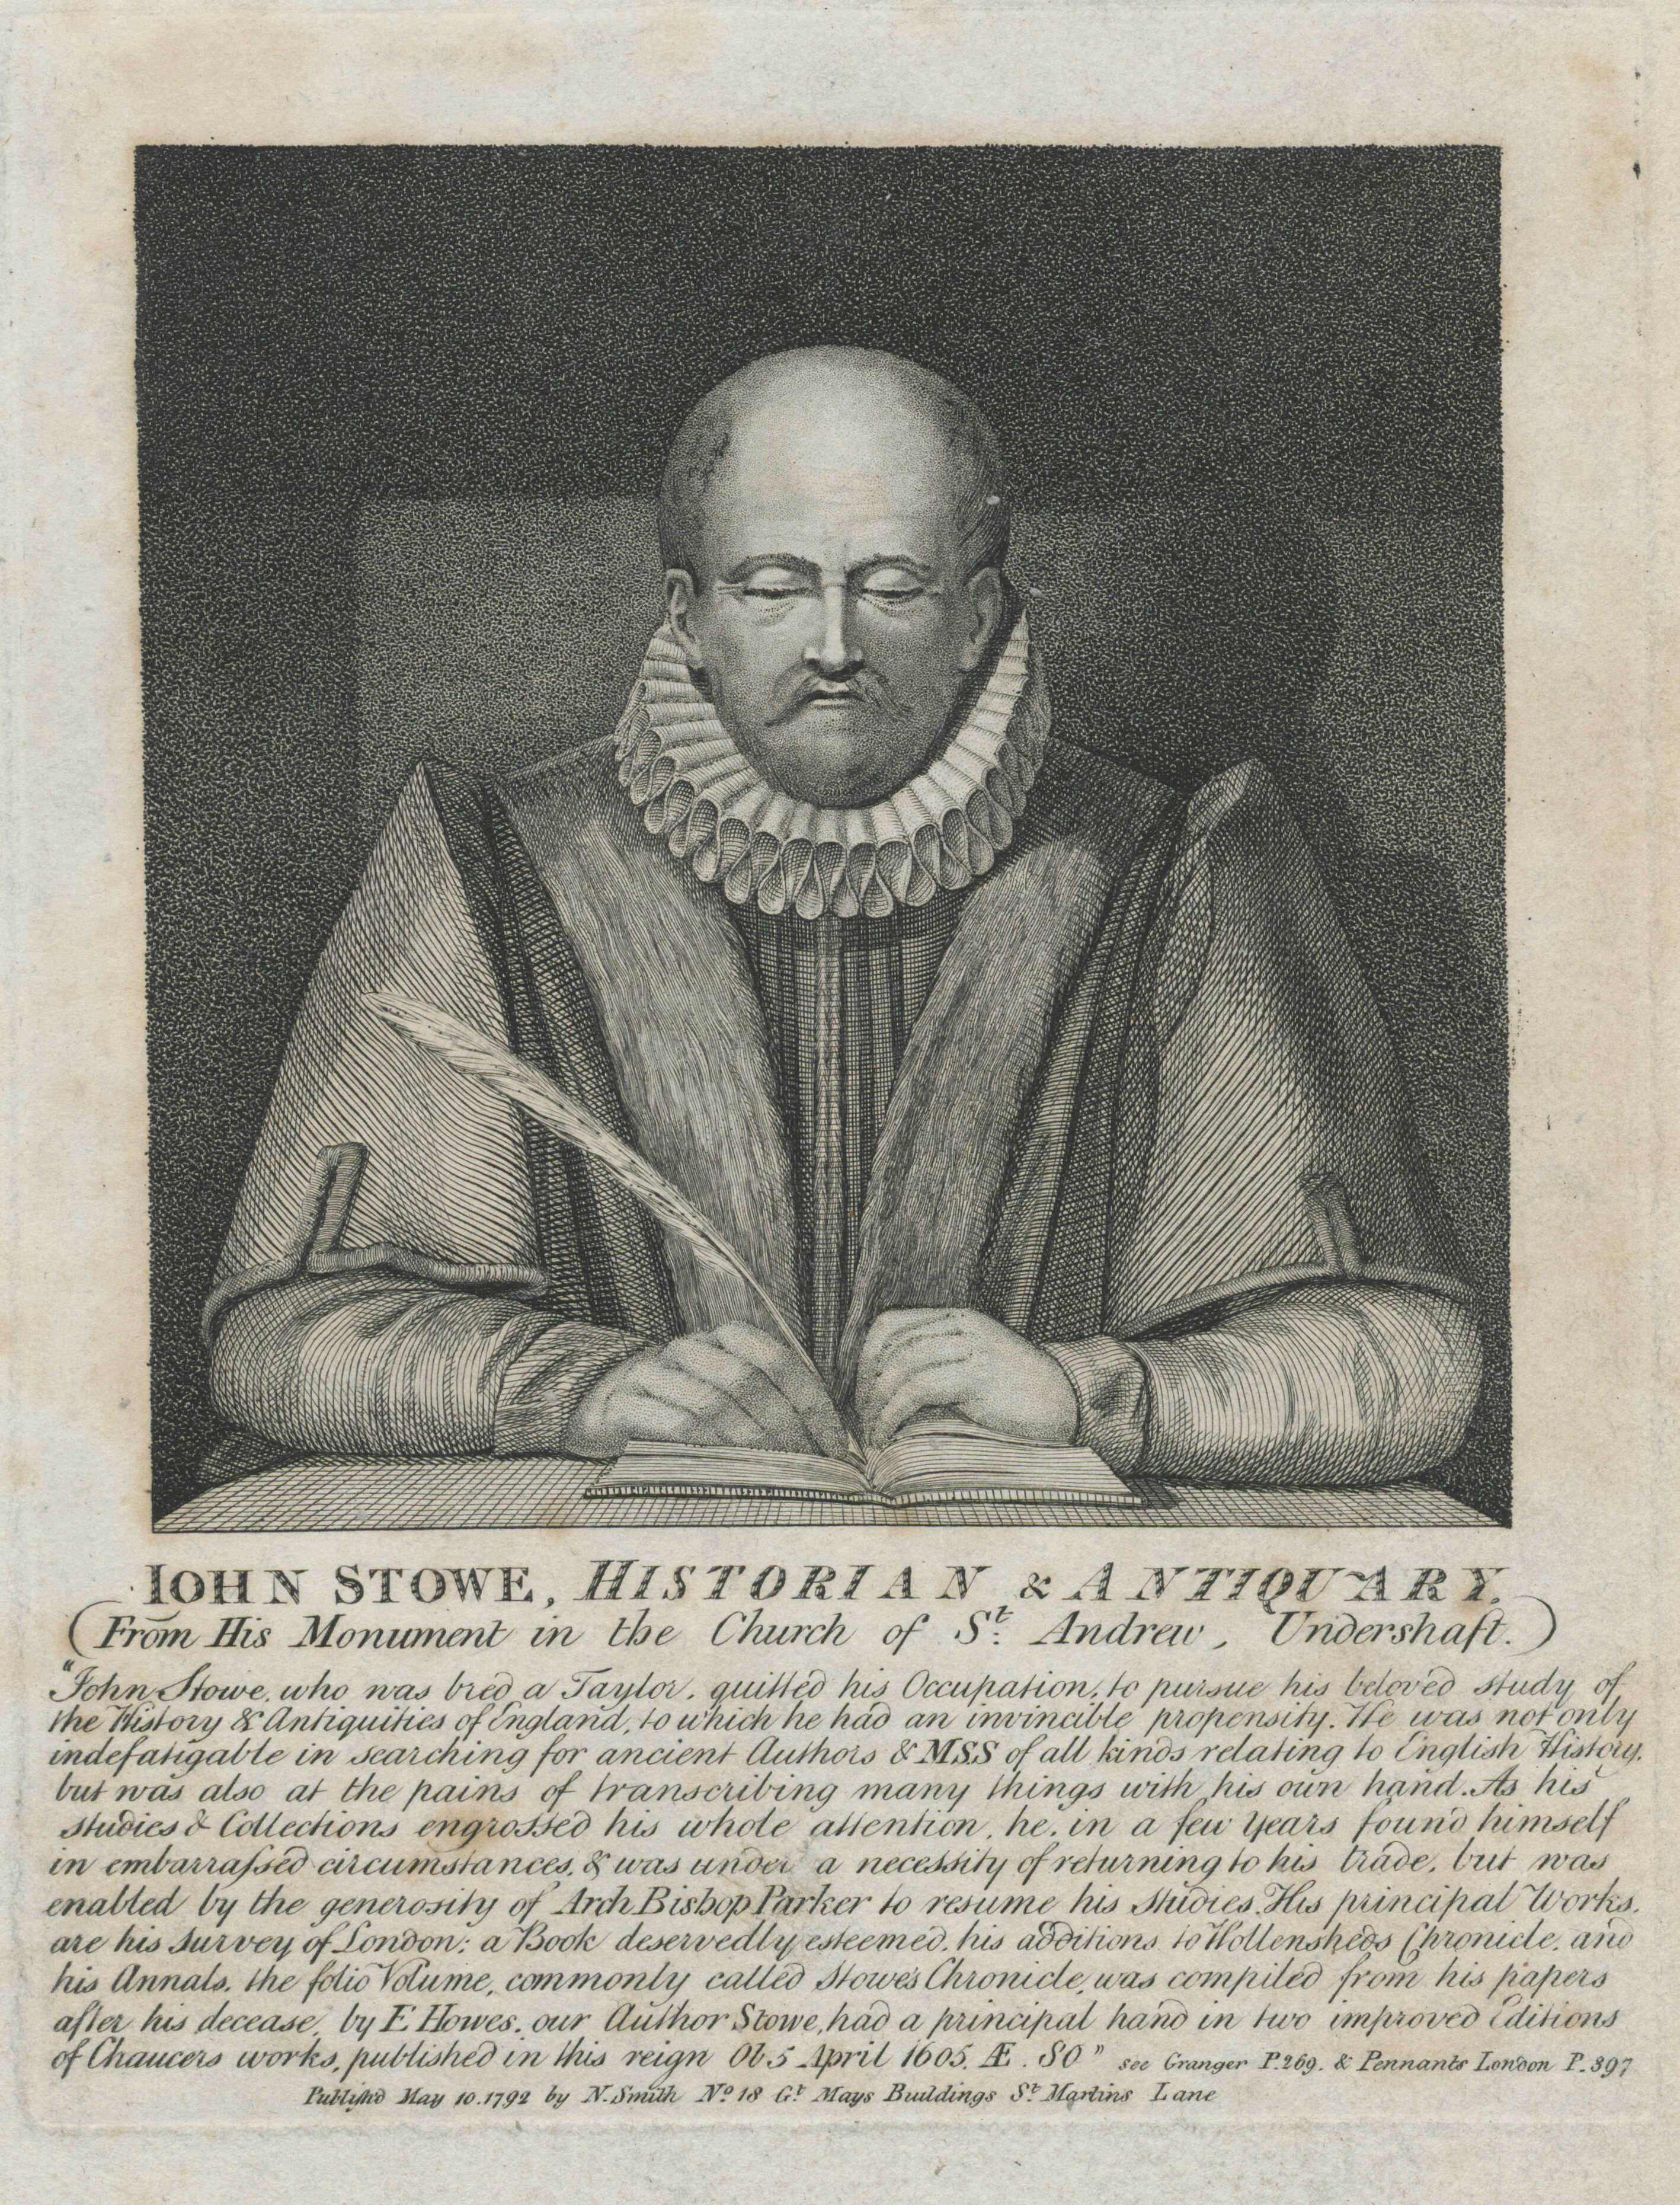 26-john-stowe-historian-antiquary-from-his-monument-in-the-church-of-st-andrew-undershaft